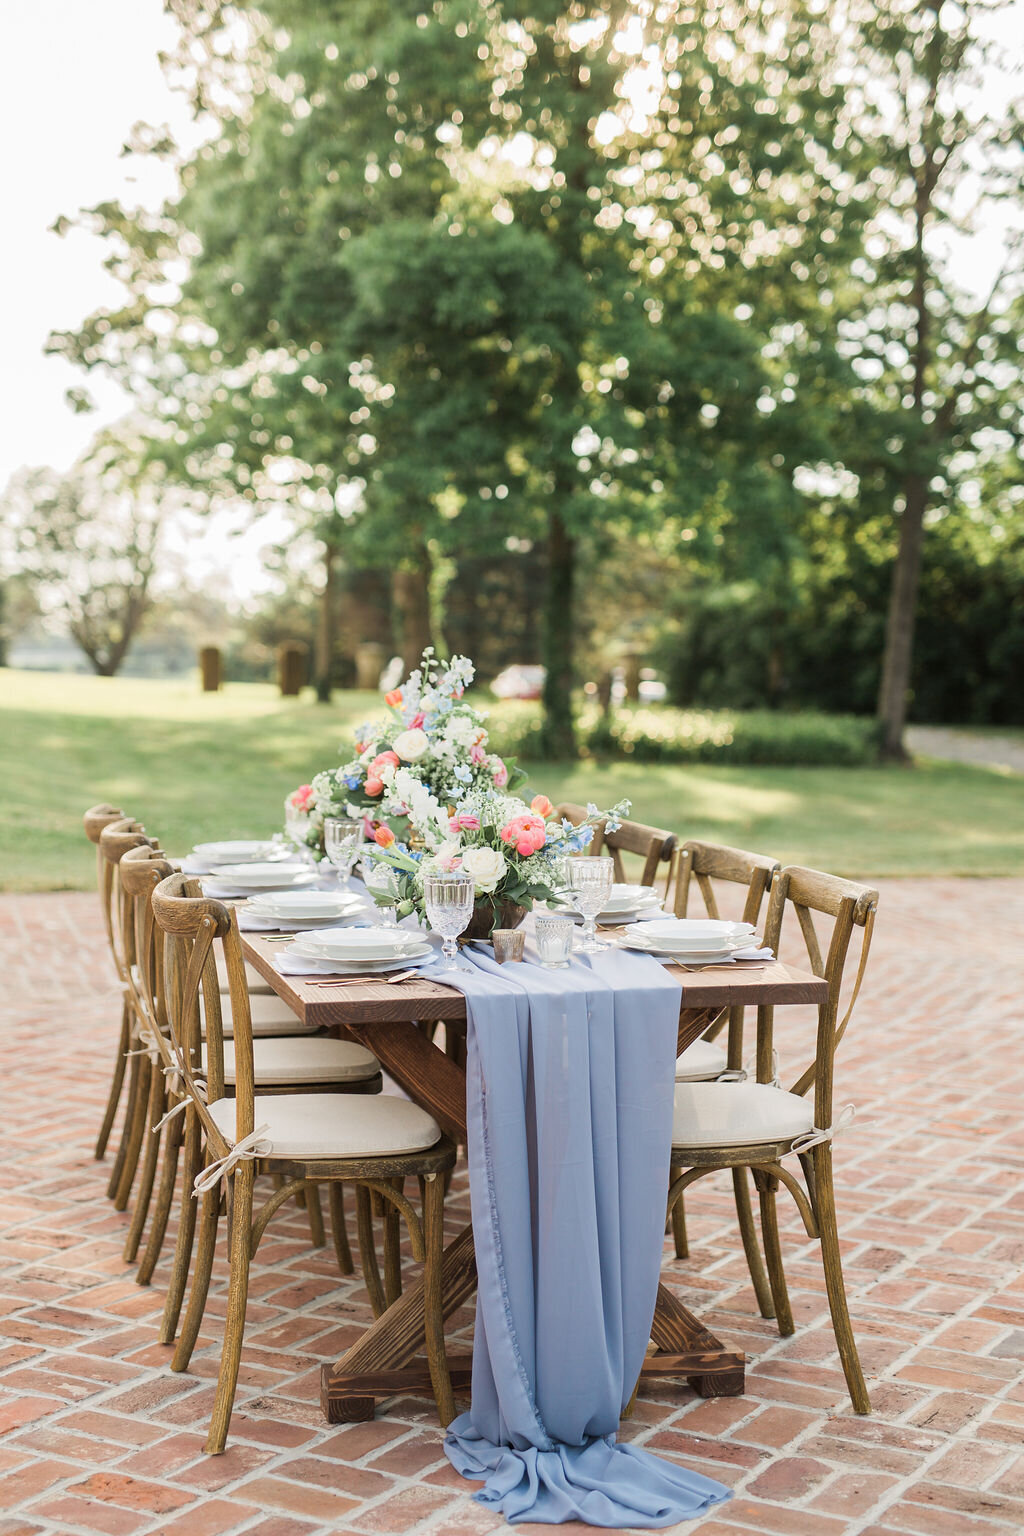 Lynwood Estate - Luxury Kentucky Wedding Venue - Fine Art Wedding Details 00025